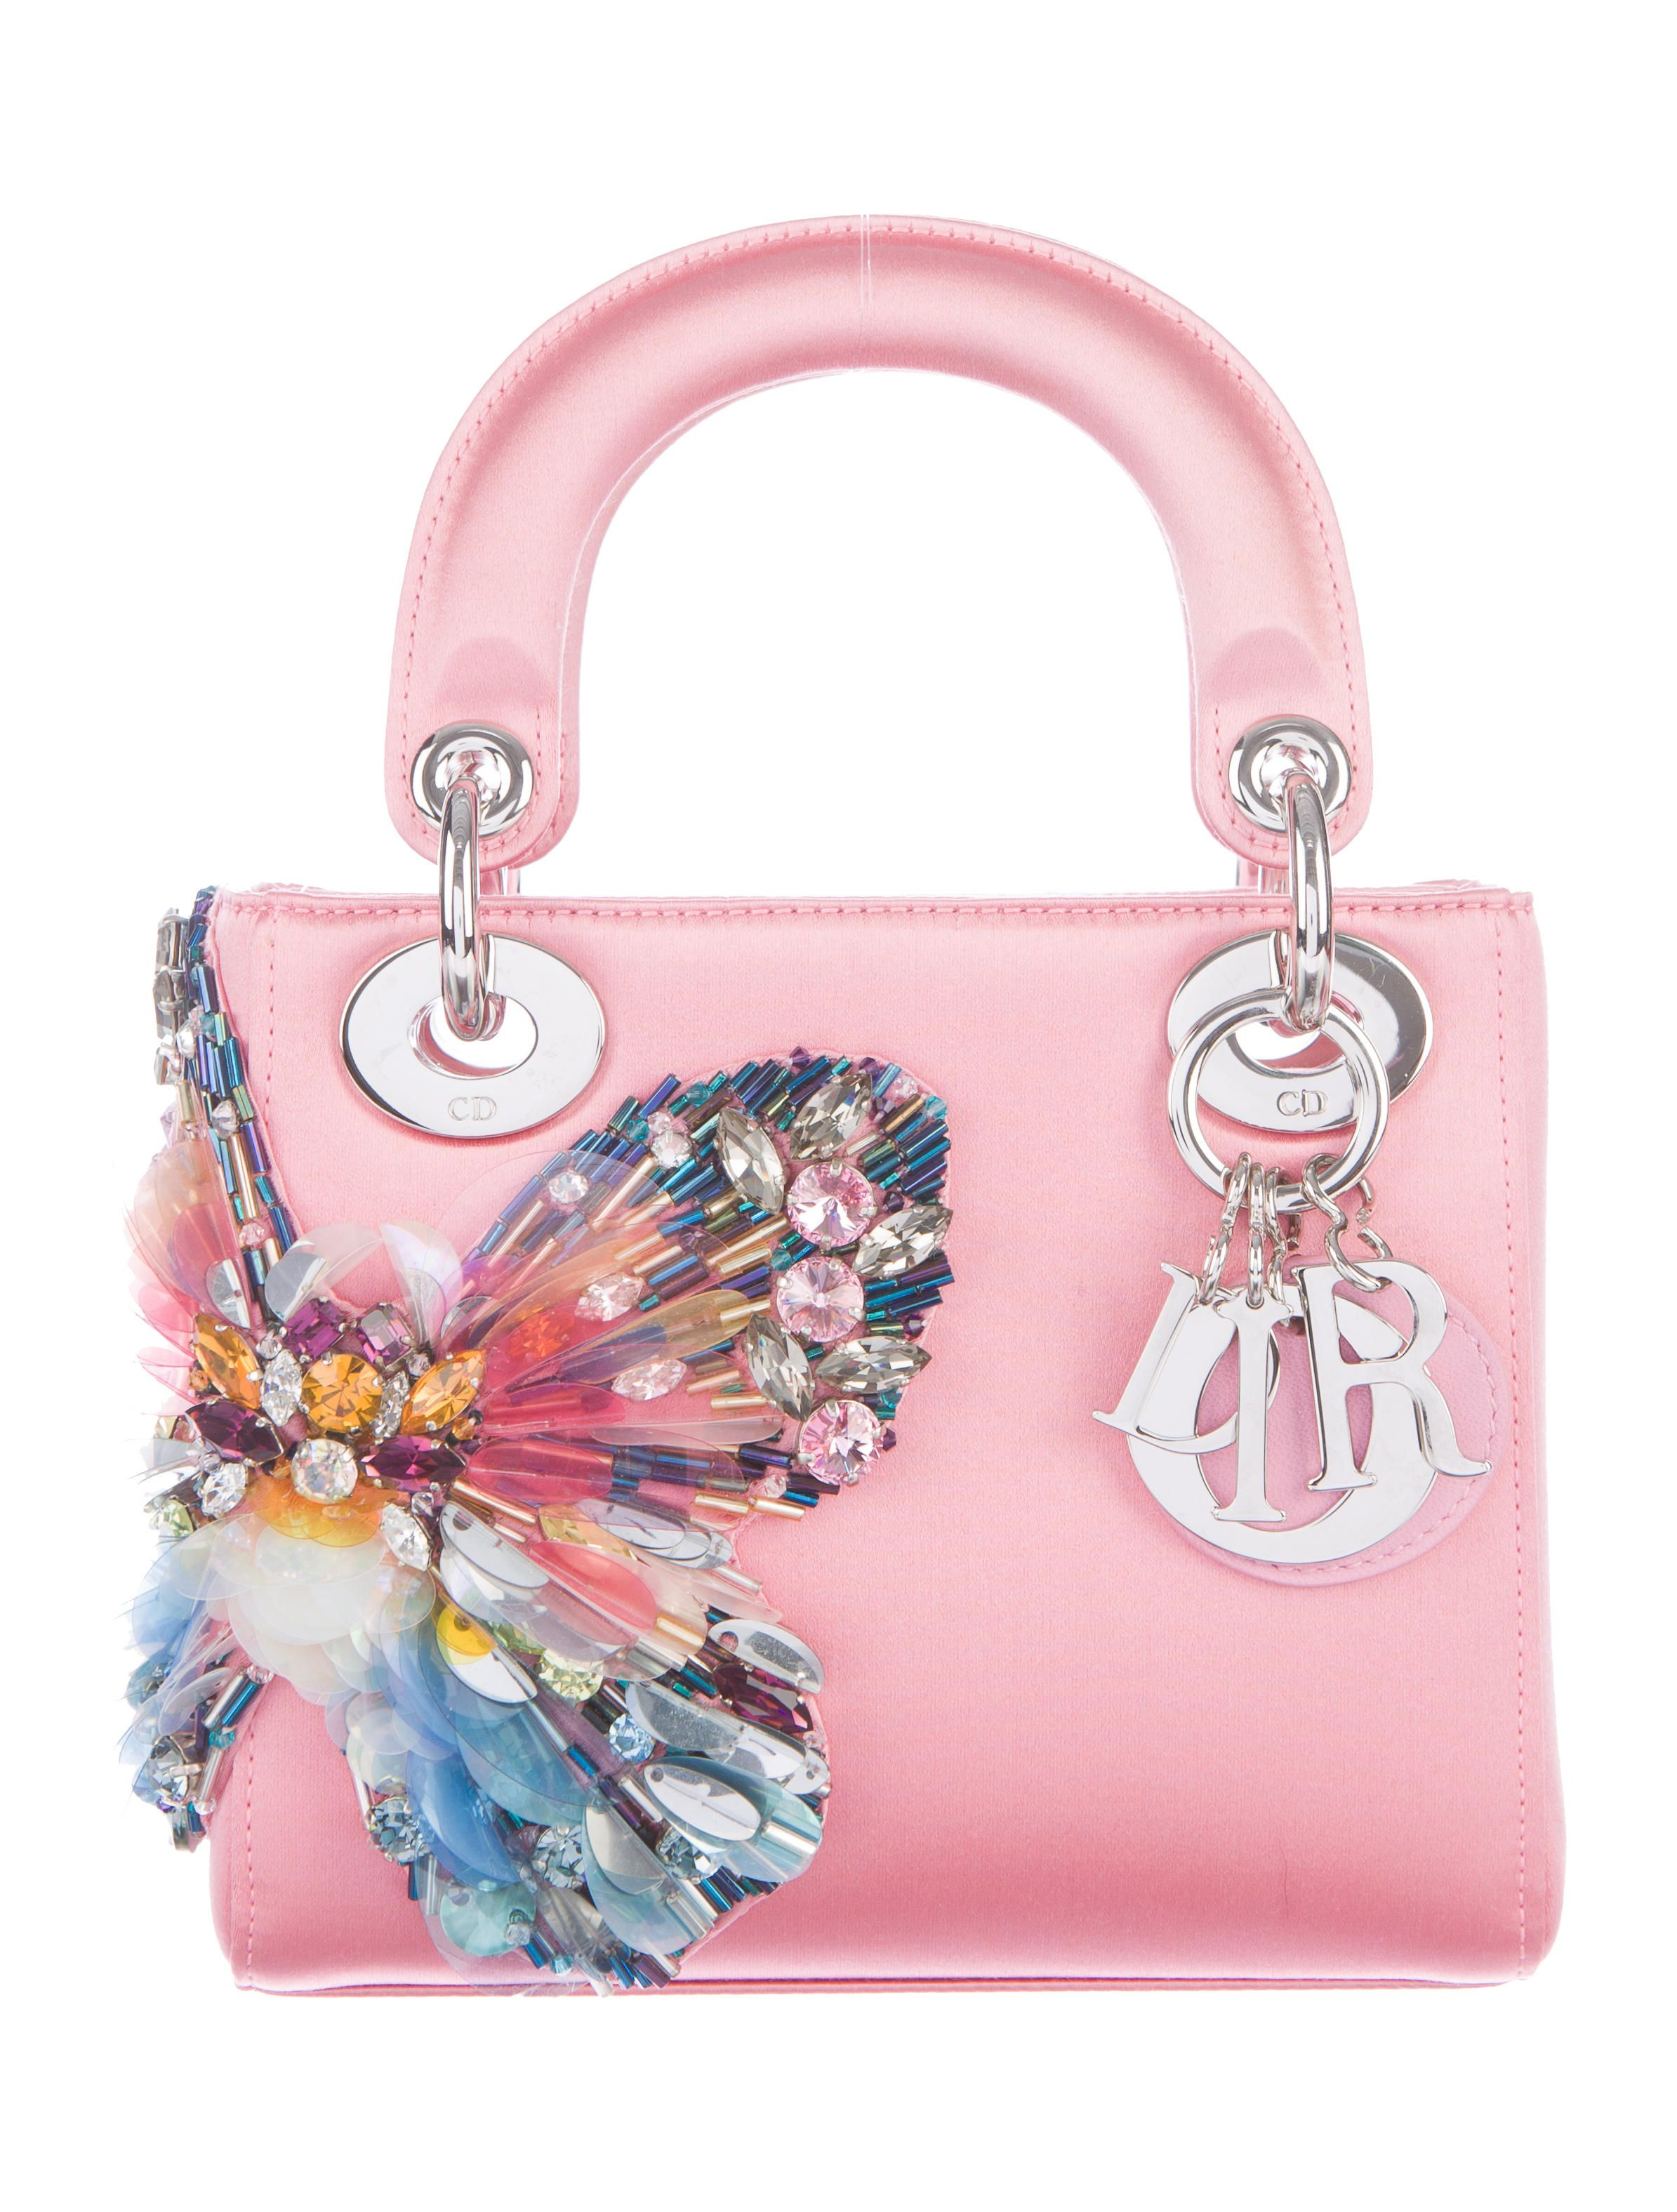 75f94283219 Butterfly-Embellished Mini Lady Dior Bag in 2019 | Dior Handbags ...